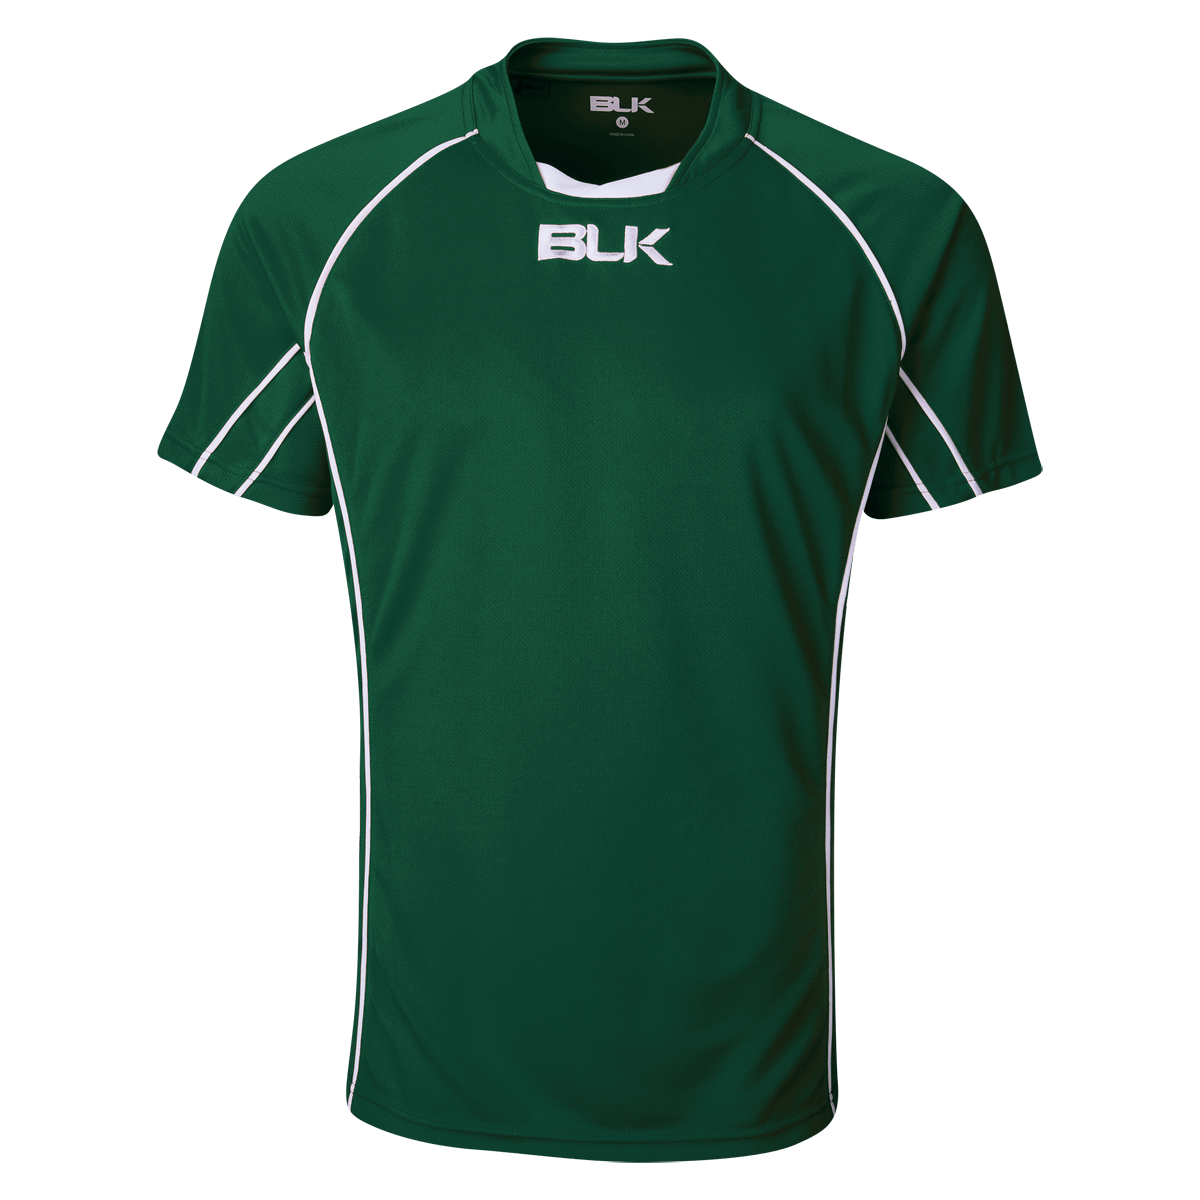 BLK Dark Green Youth Icon Rugby Jersey